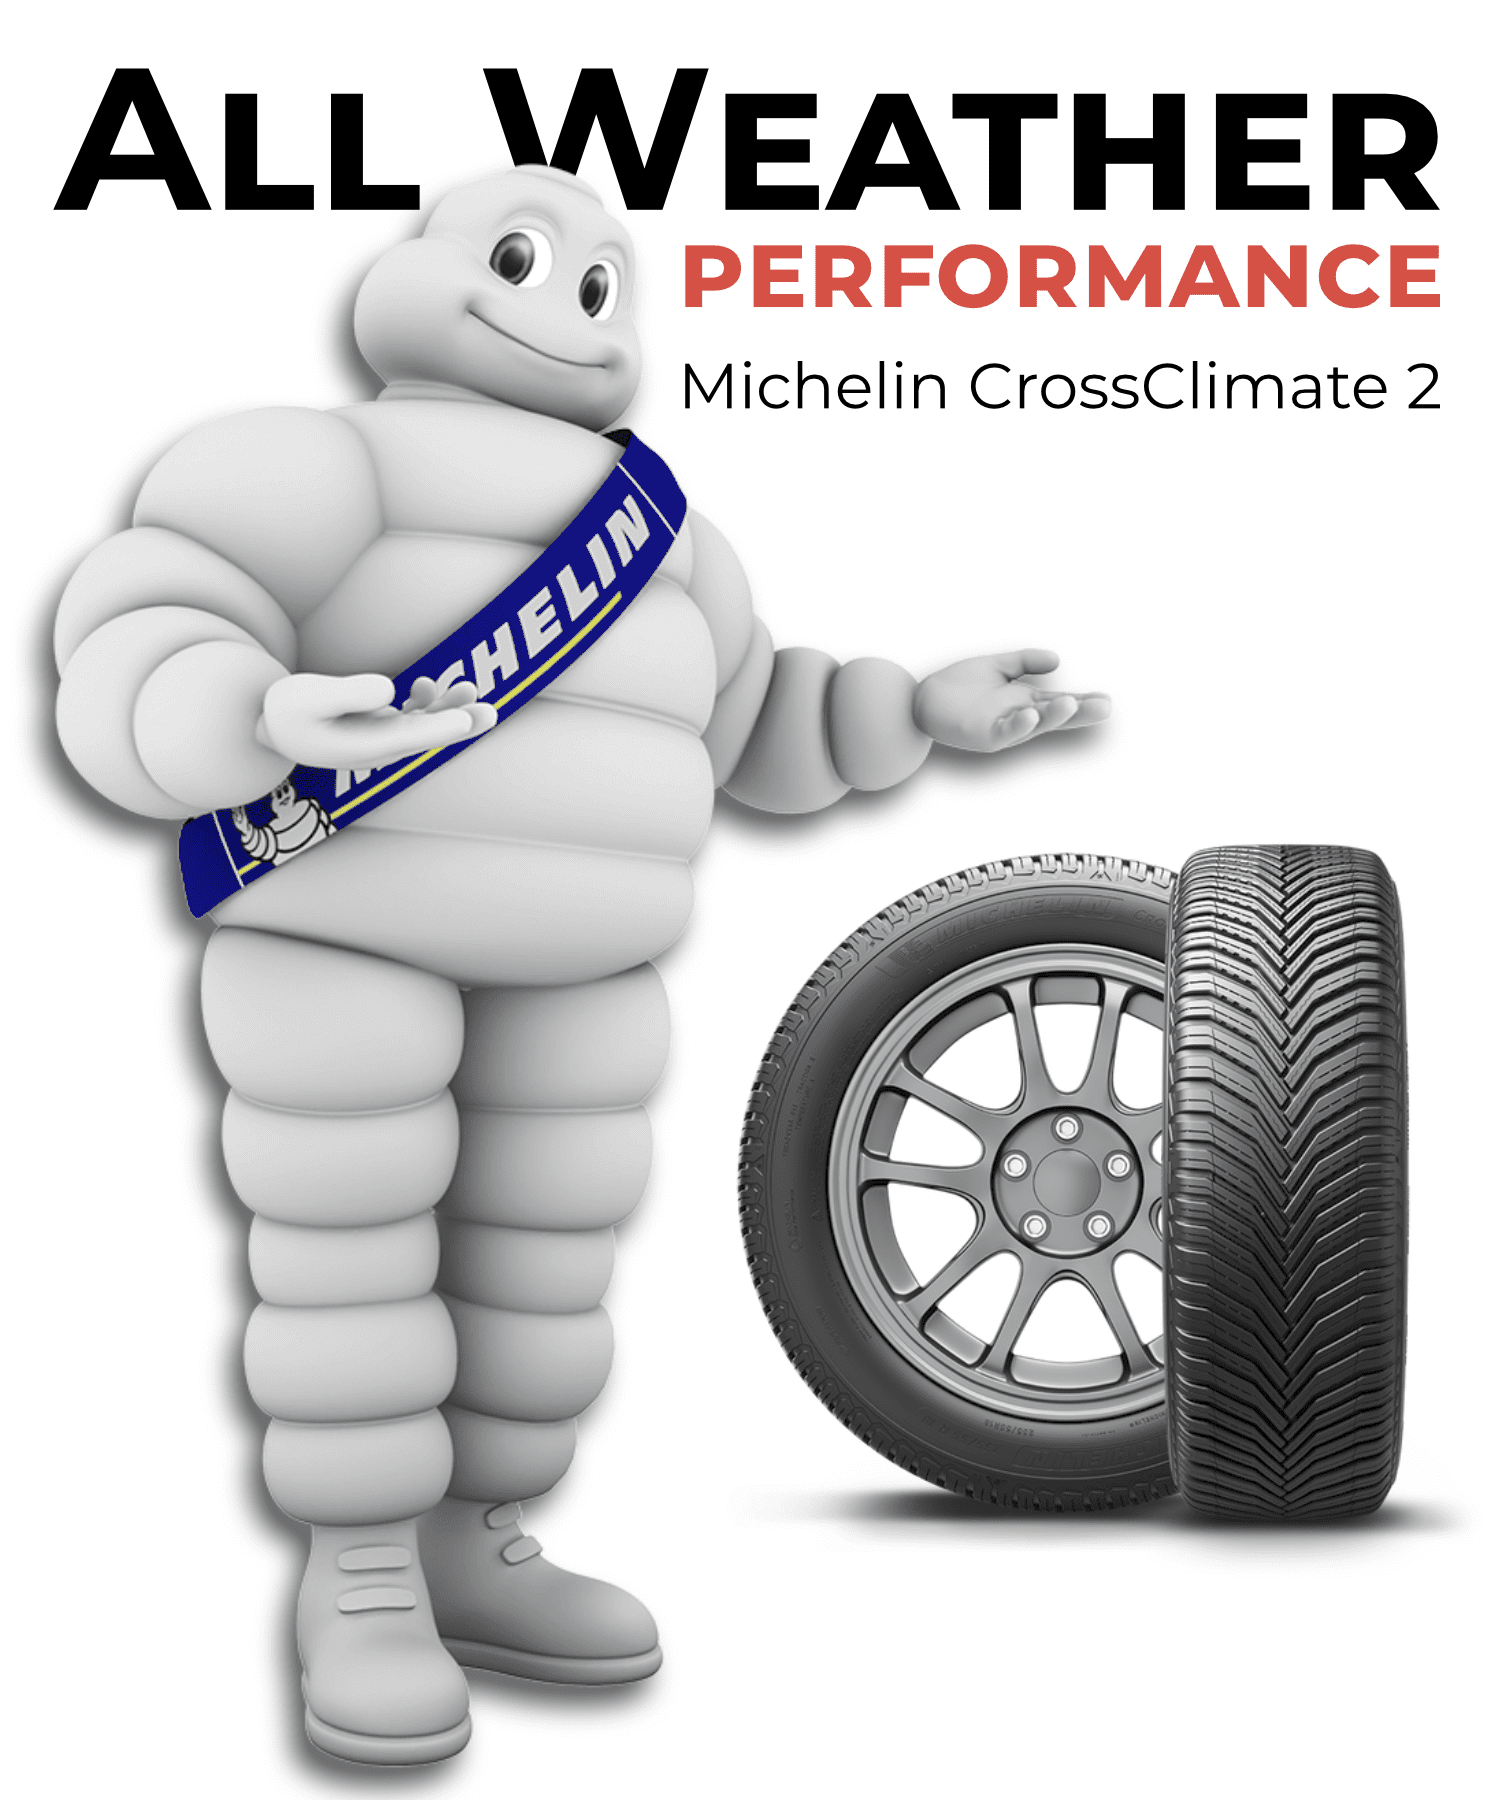 All Weather Michelin Man holding tire